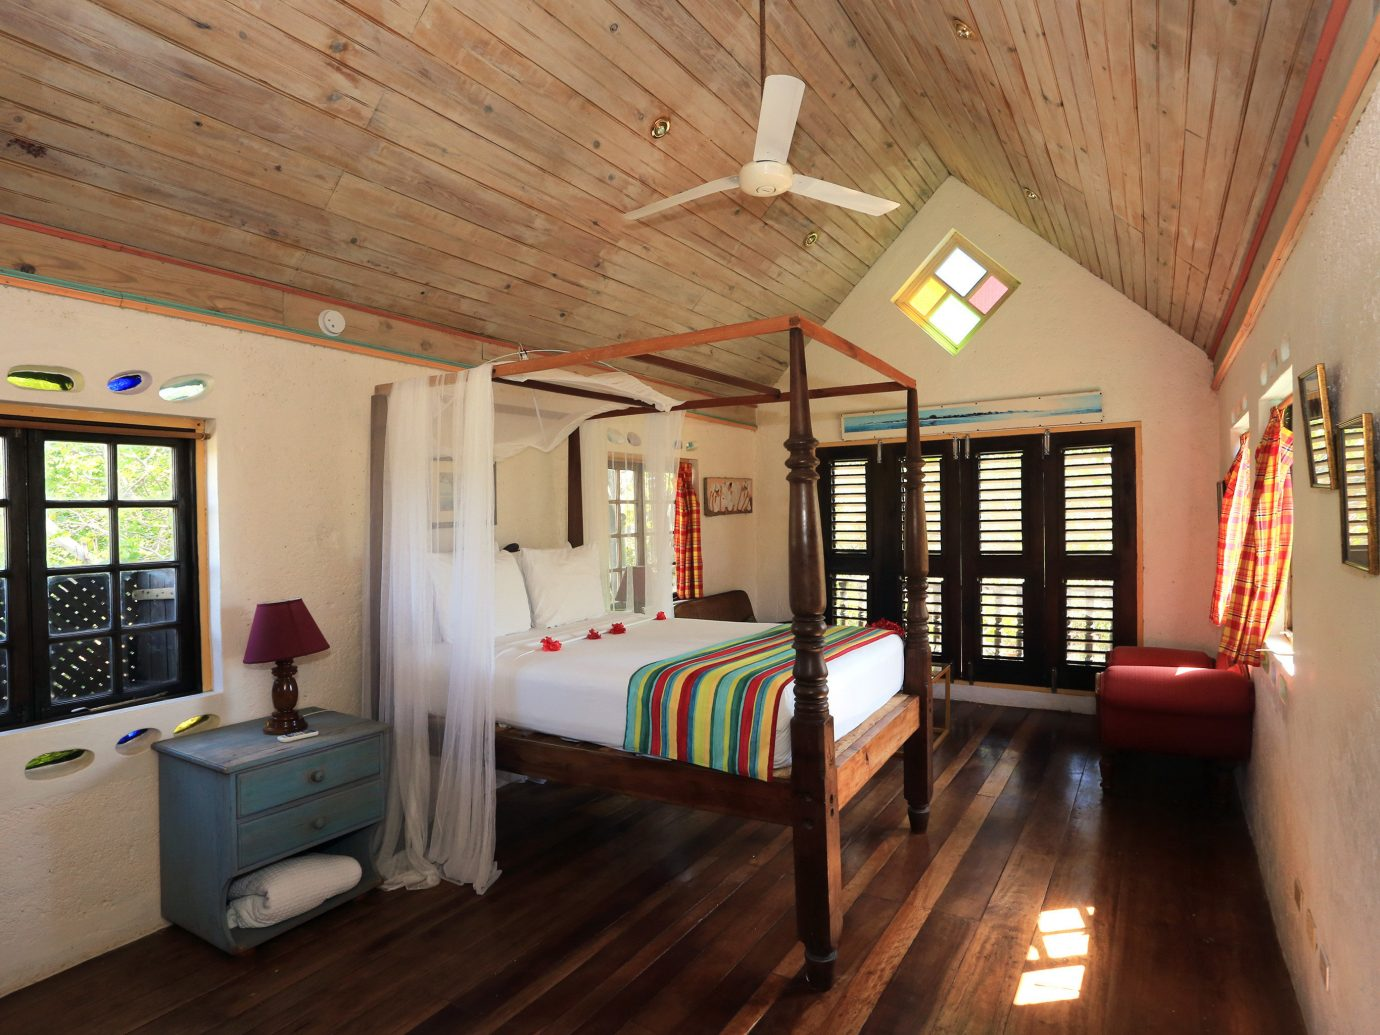 Bedroom at Jake's Treasure Beach, Jamaica